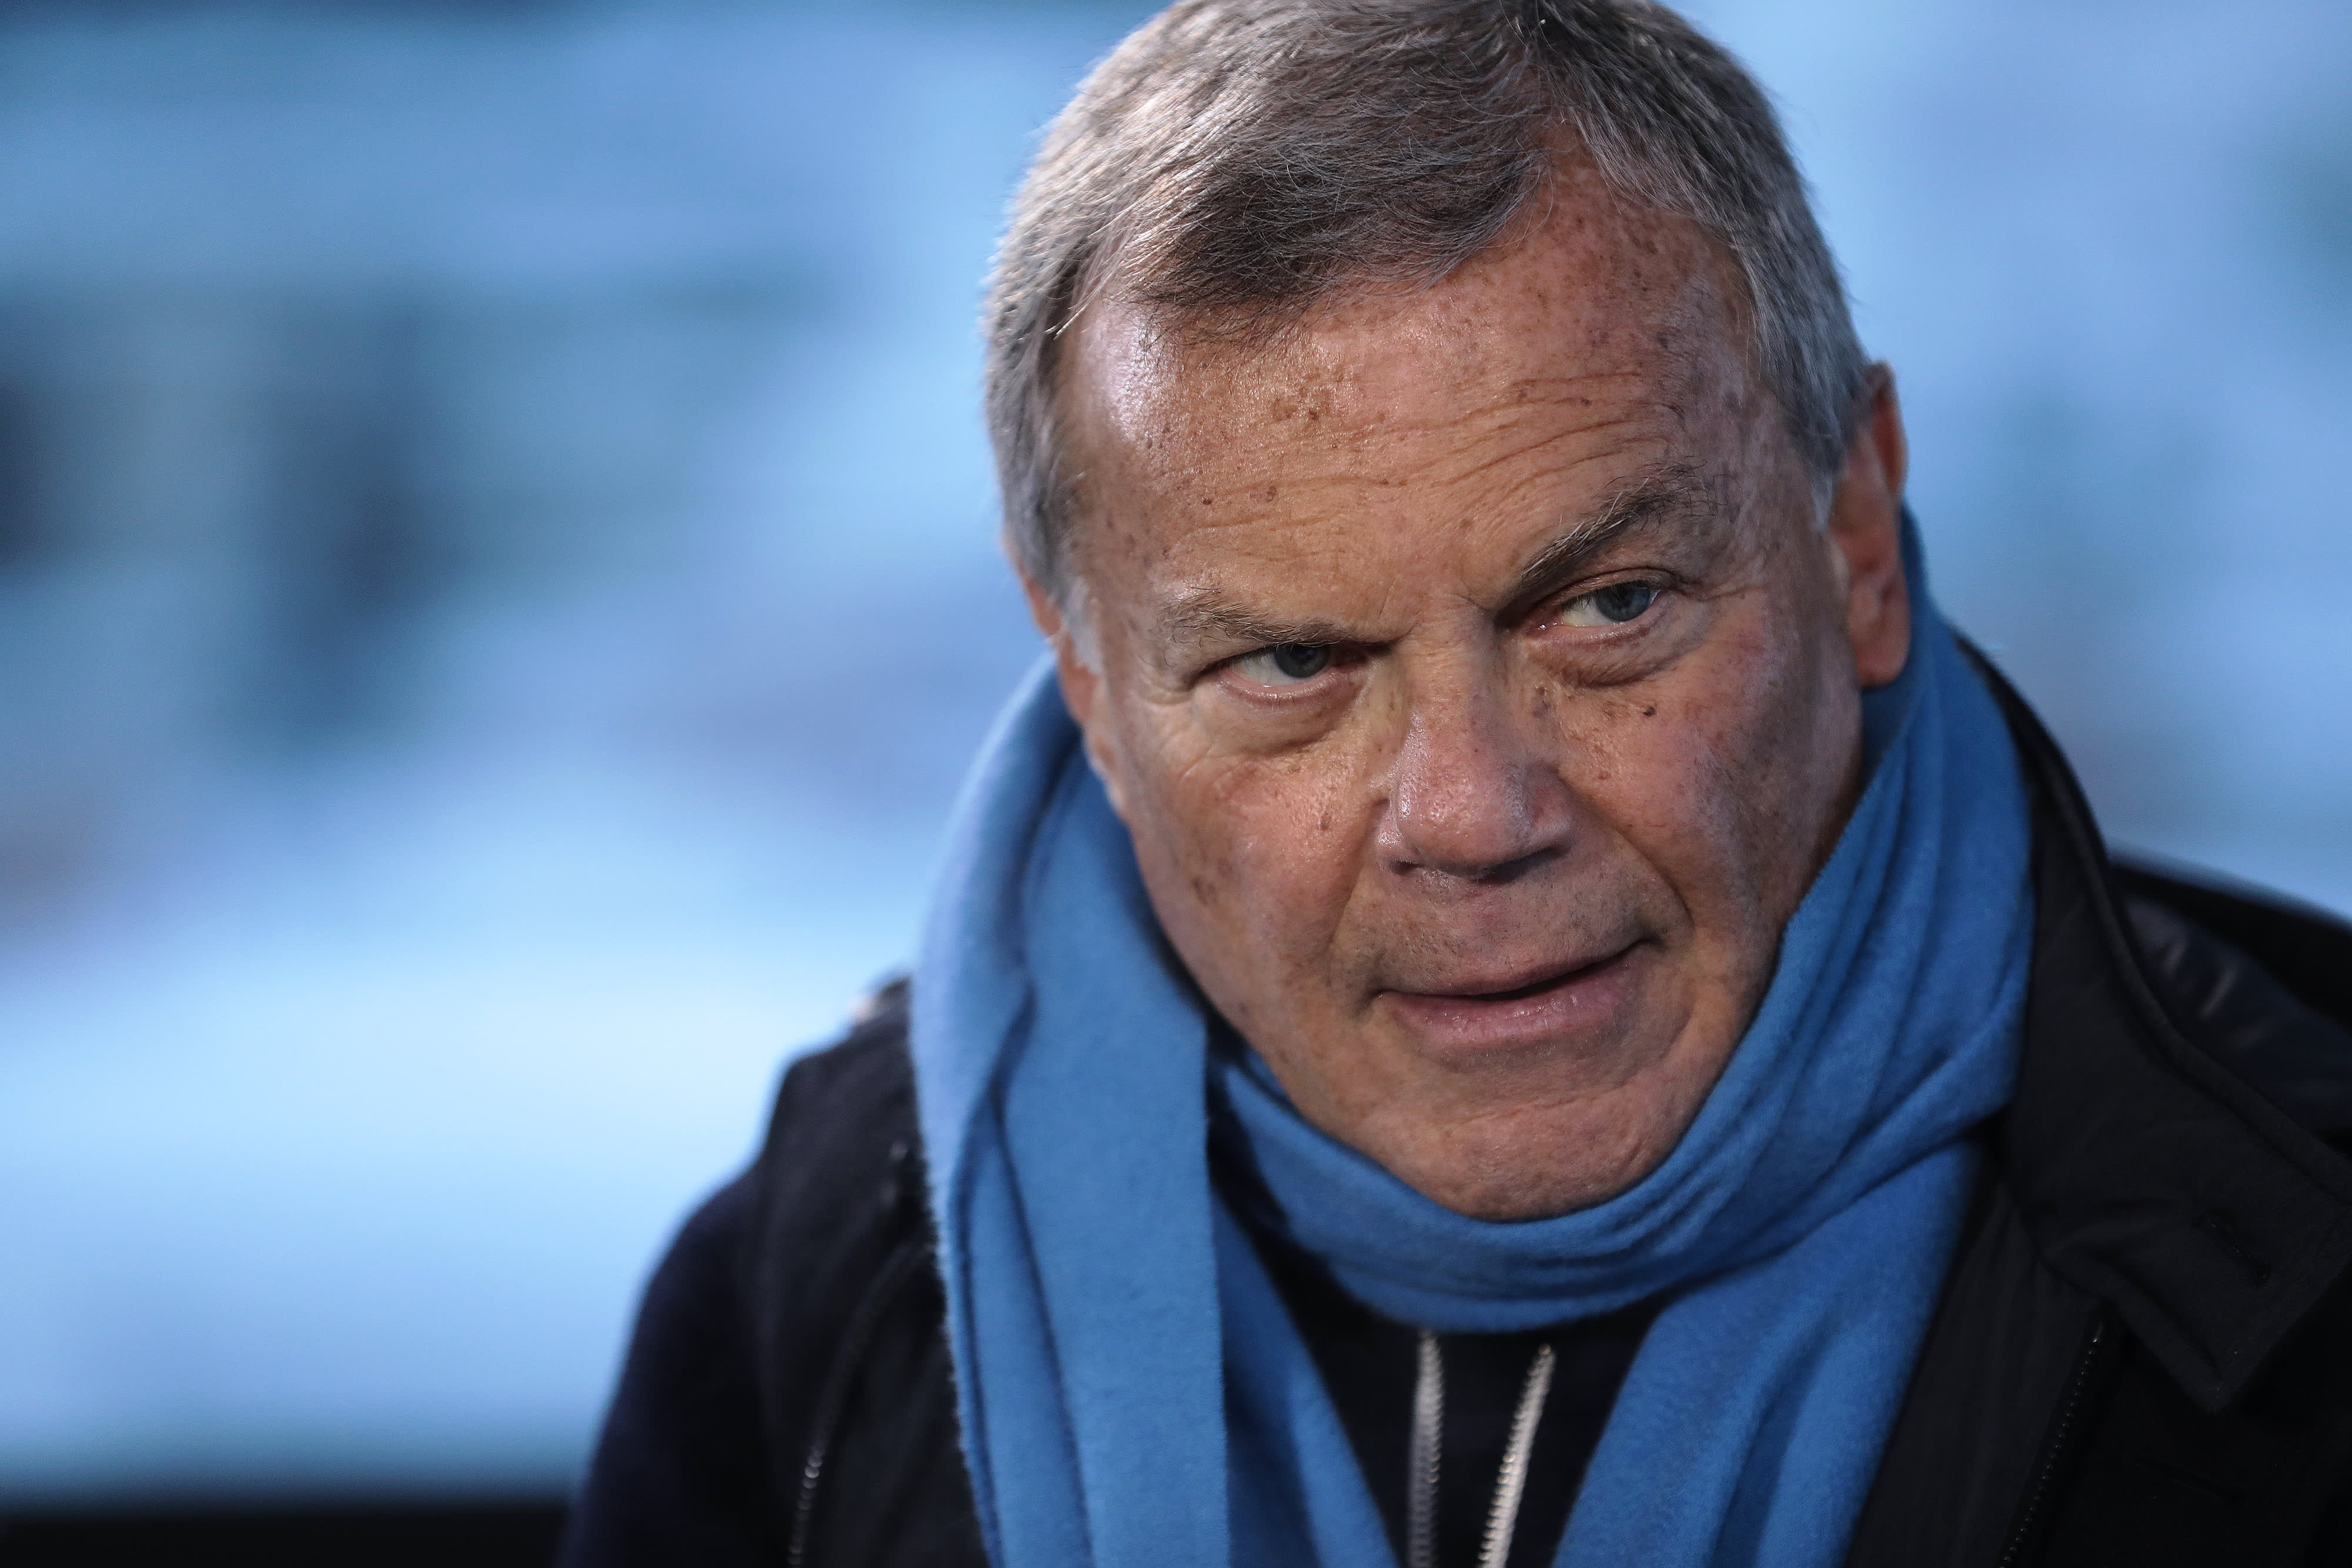 Former CEO Martin Sorrell says he remains 'very concerned' about the progress of WPP